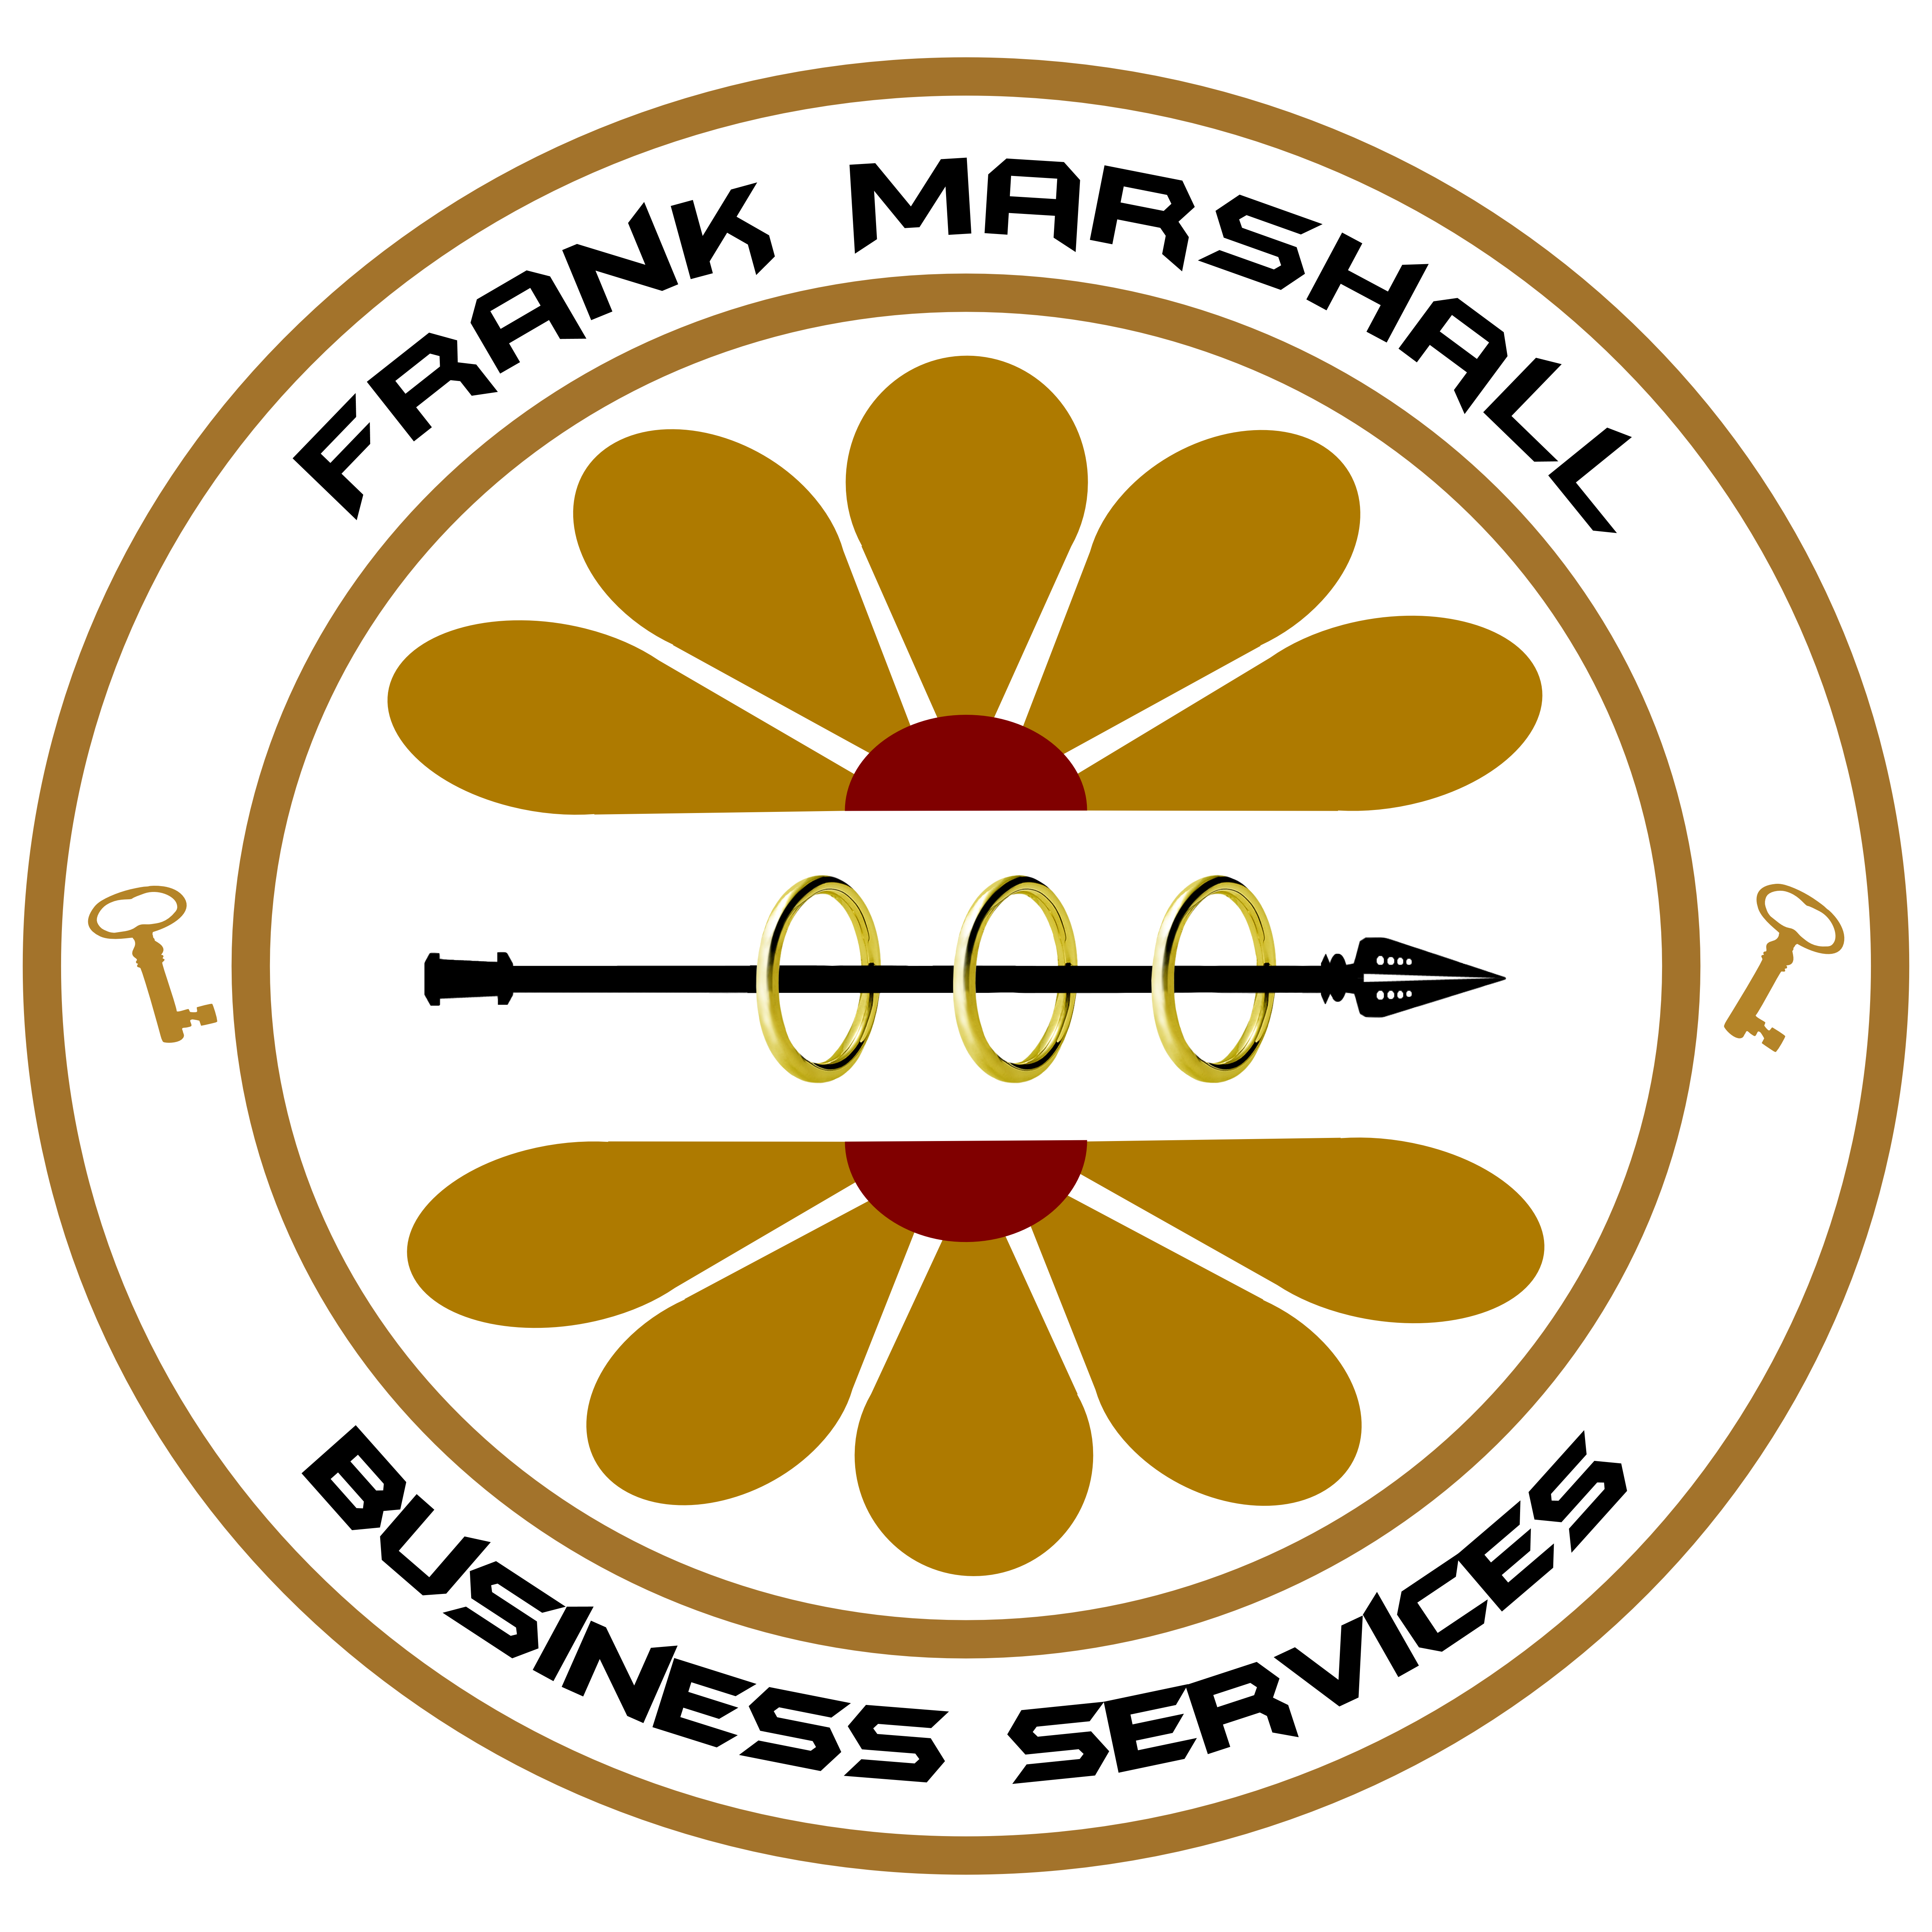 Frank-Marshall Business Services - New Logo Oct 2018